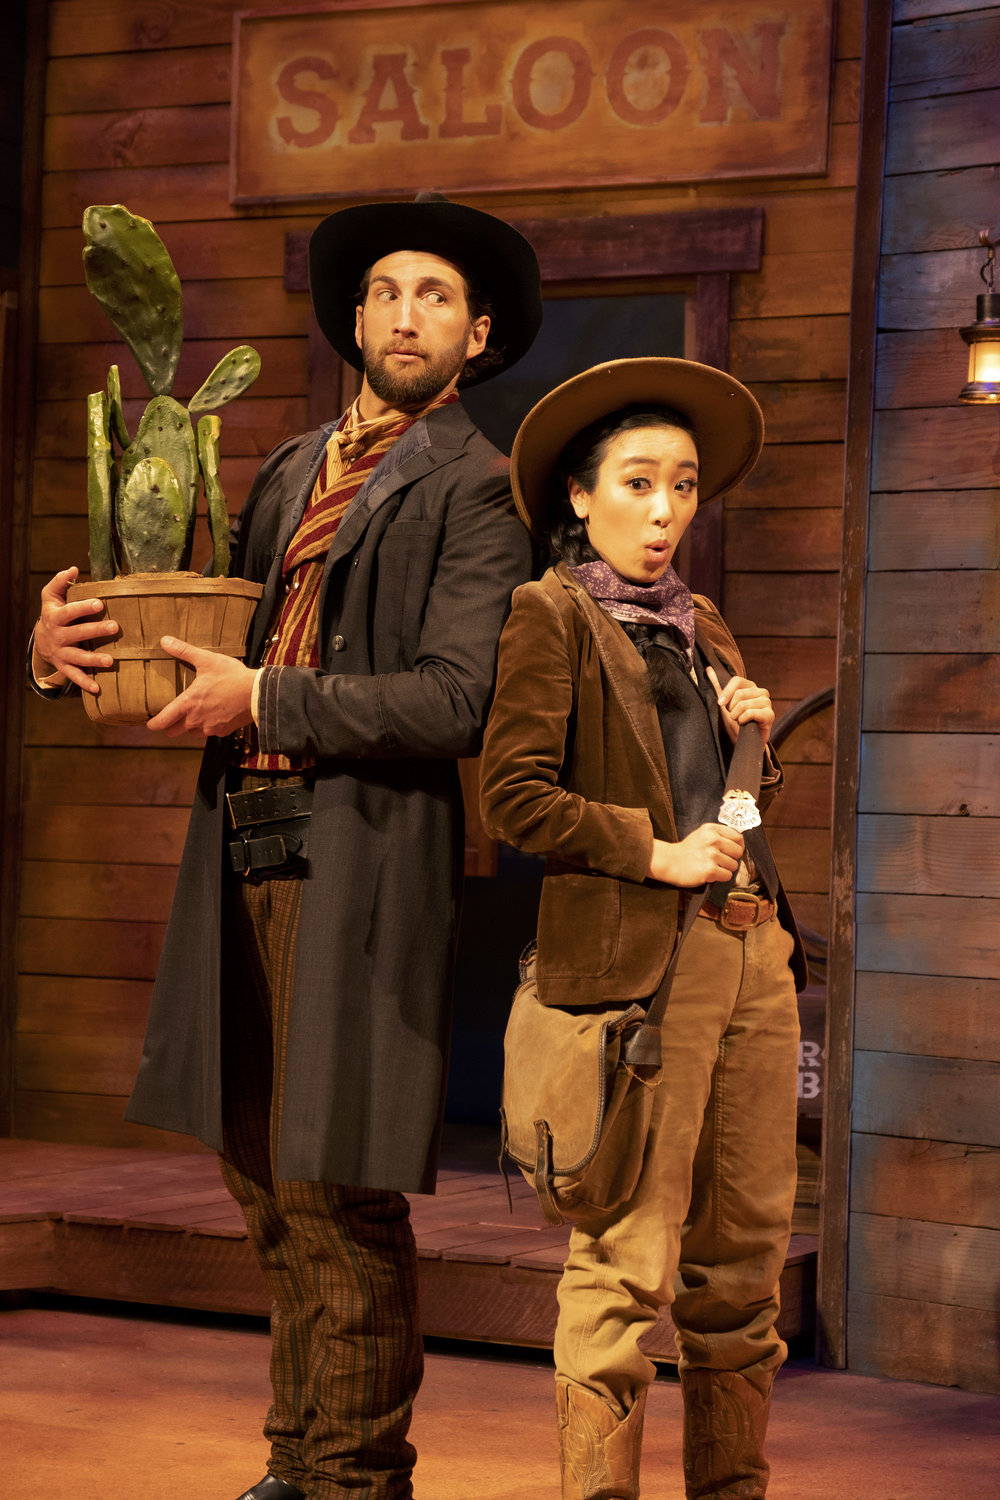 FROM LEFT TO RIGHT: CLAYTON SNYDER & GRACE YOO  PHOTO CREDIT: AARON BATZDORFF